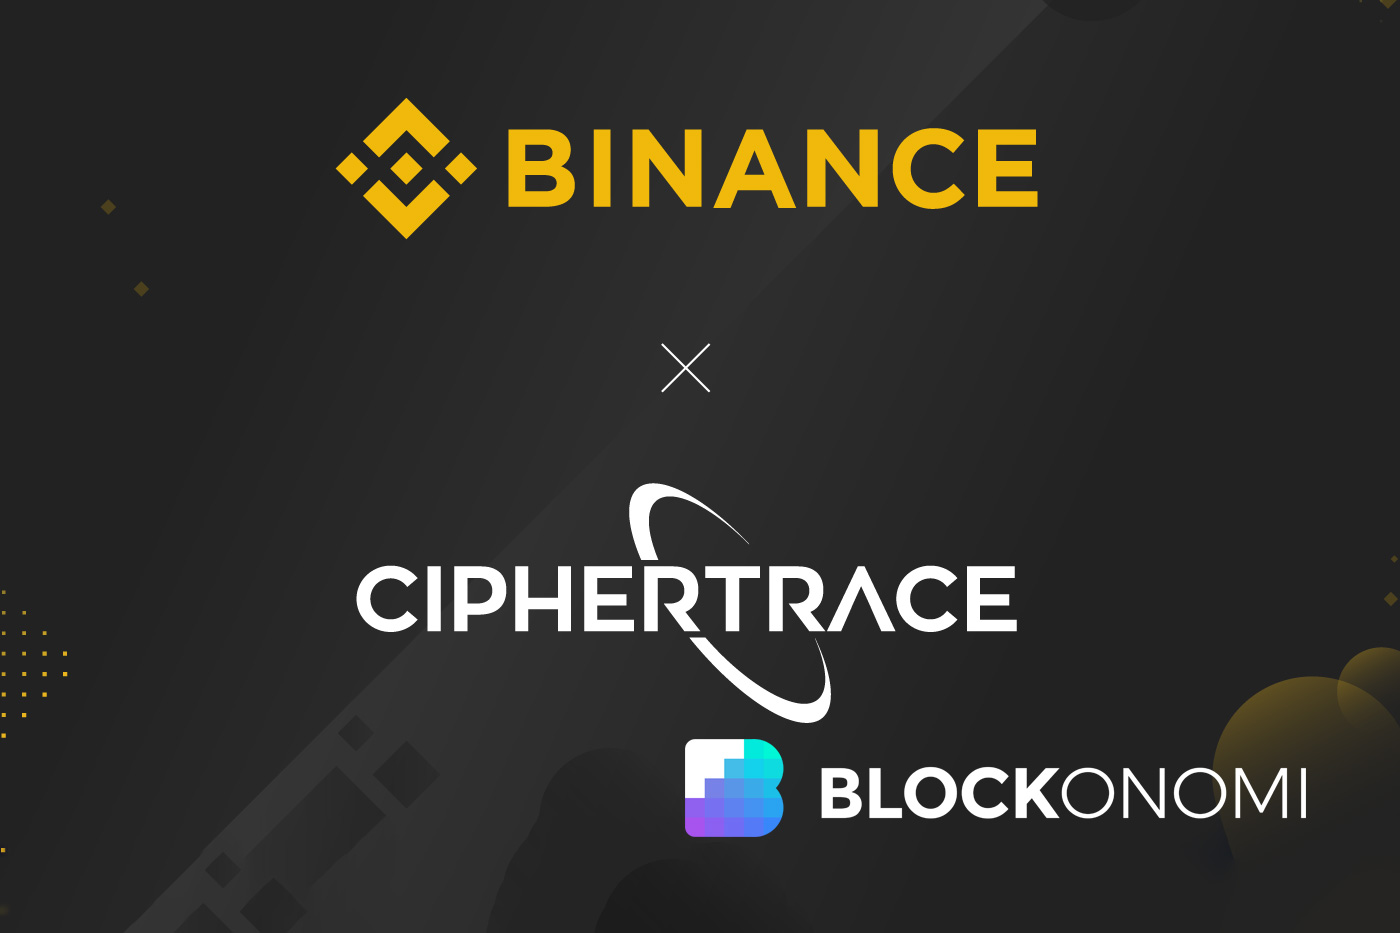 Binance Teams with CipherTrace to Double Down on AML Protections